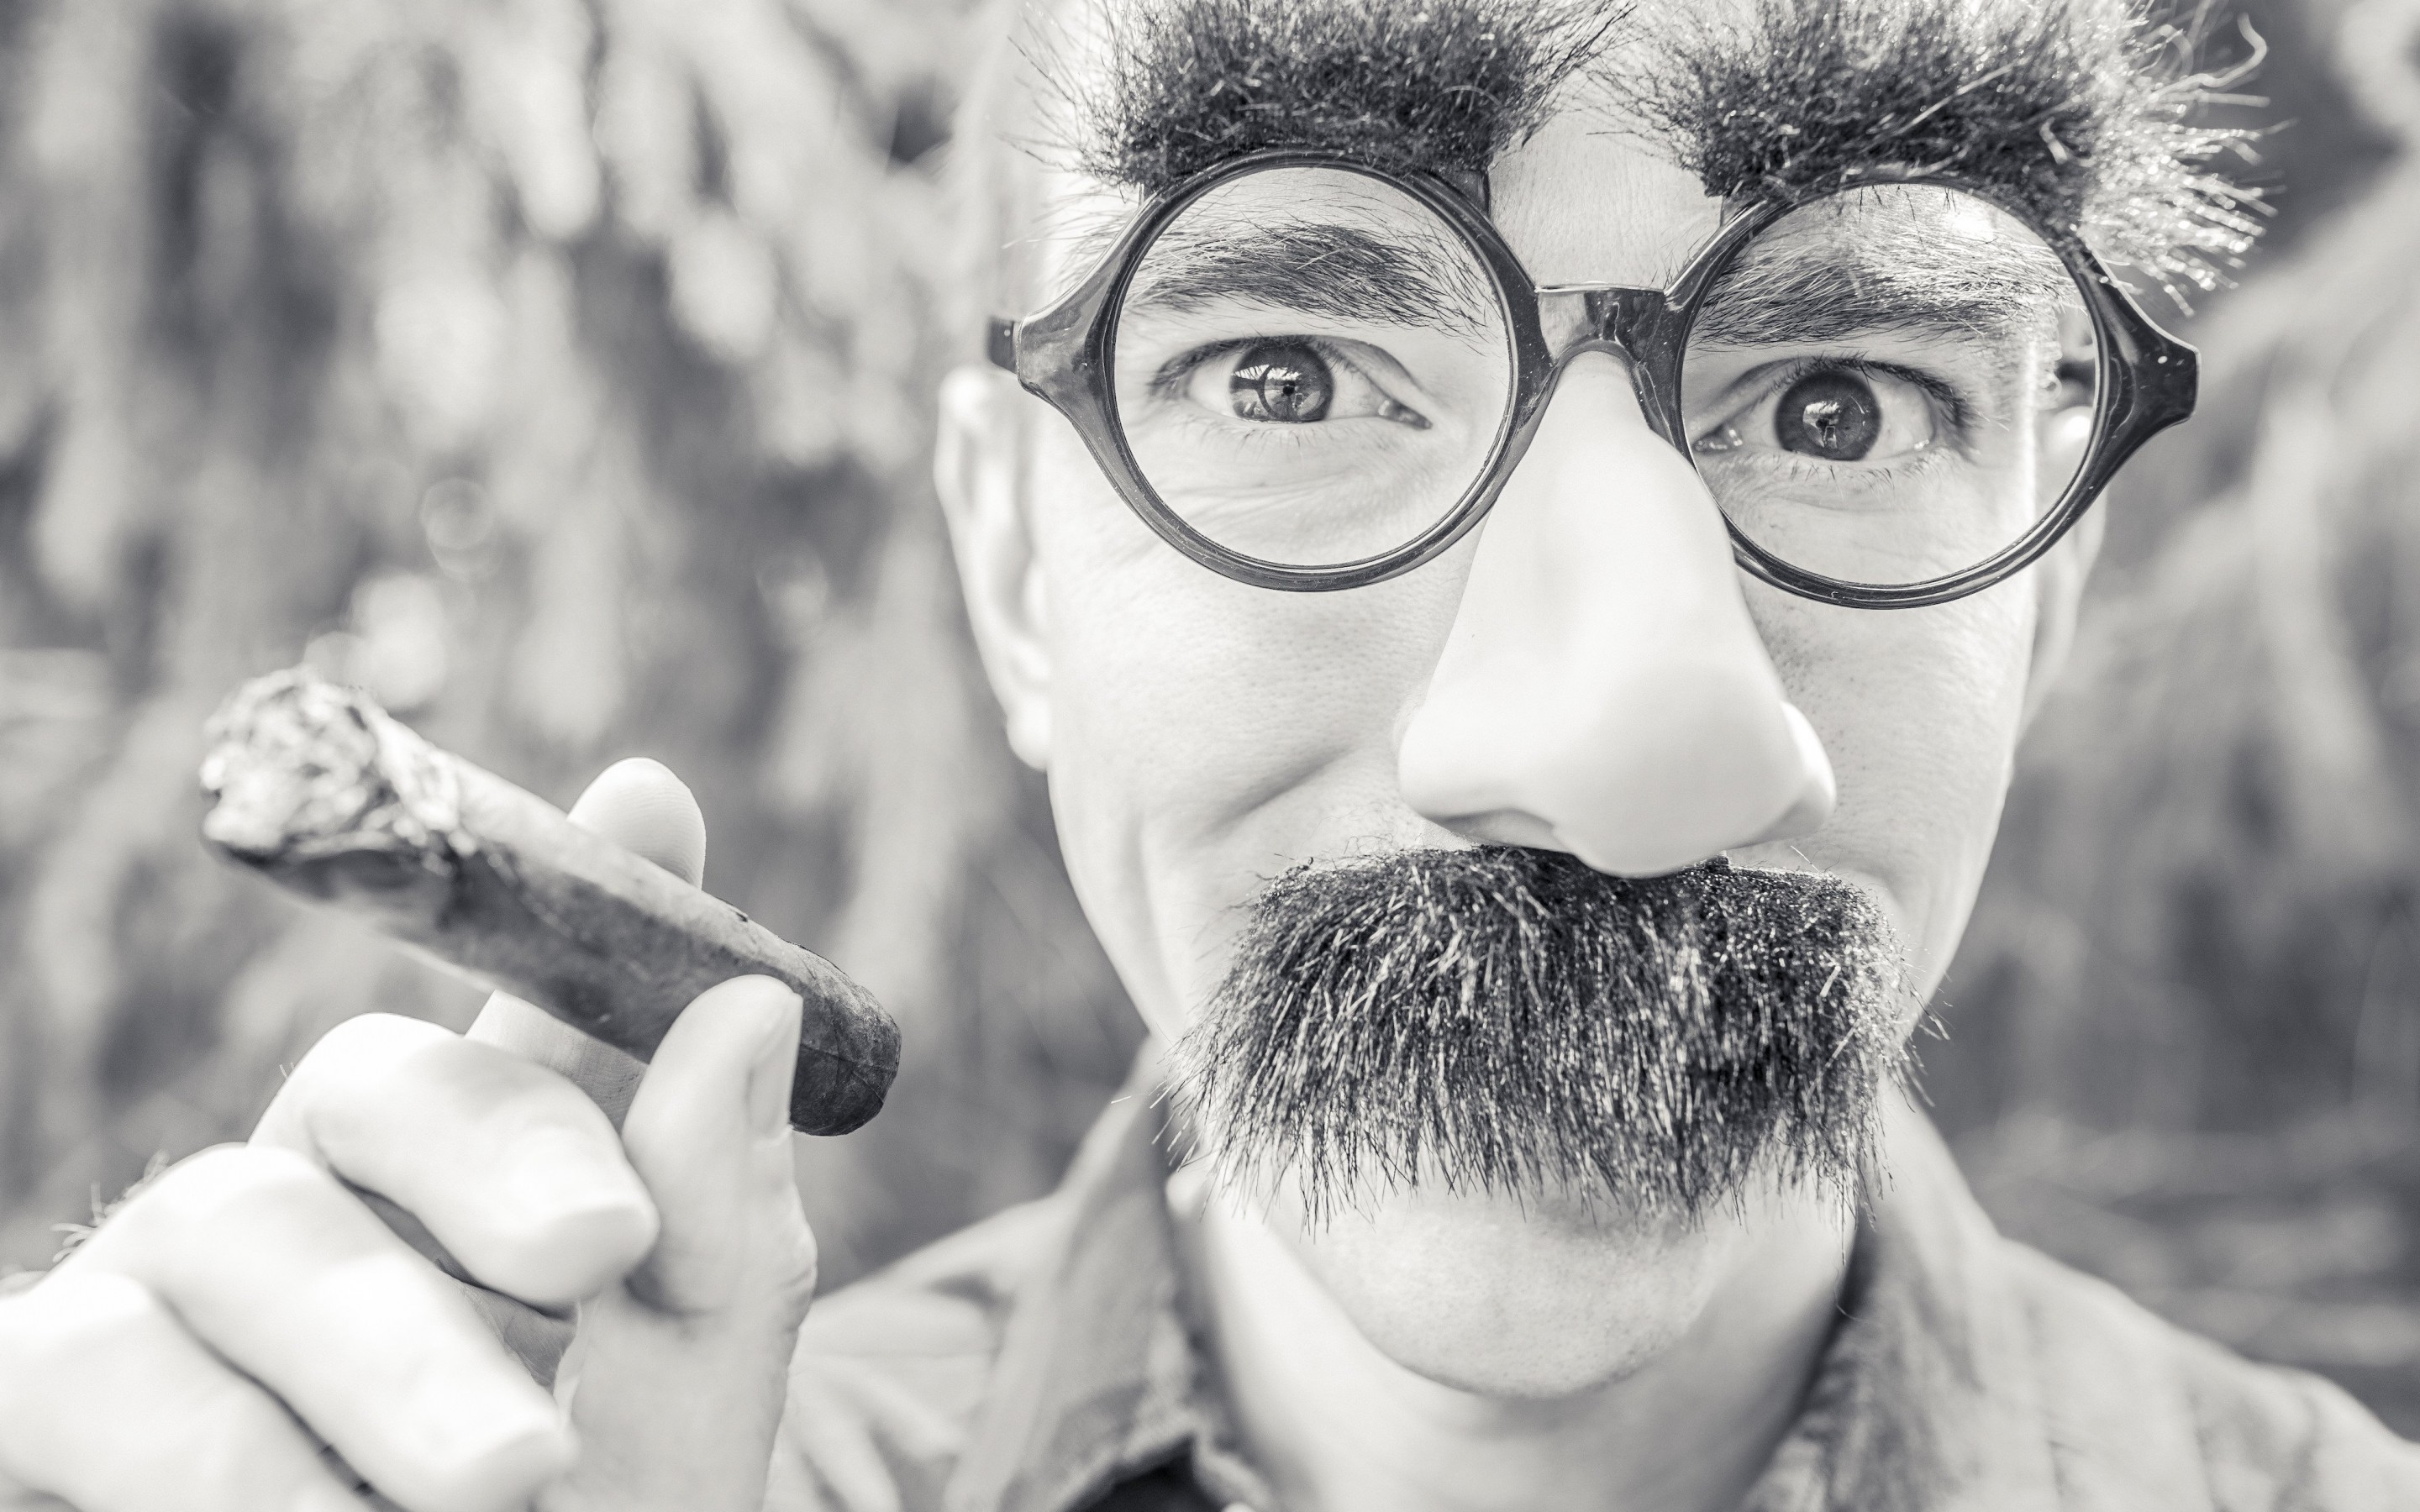 Groucho Glasses Man Wallpaper for Desktop 2880x1800